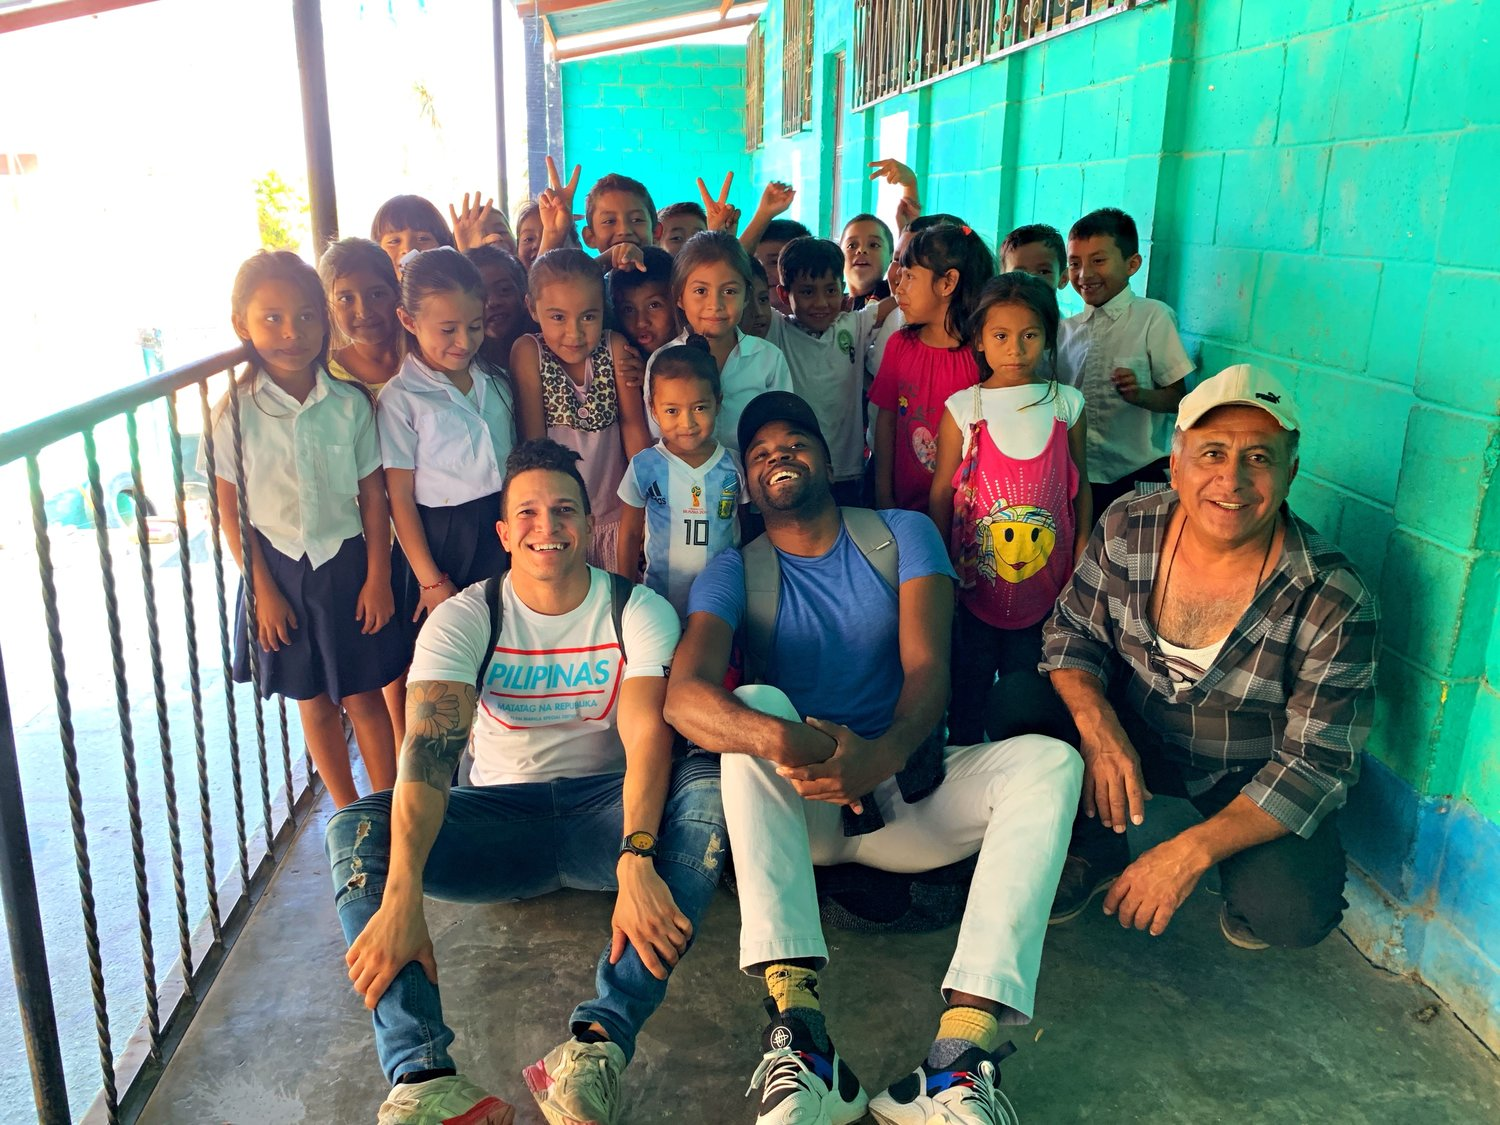 Craig Taylor, center, with children in Sanarate, Guatemala. His charity builds schools in poor areas around the world.